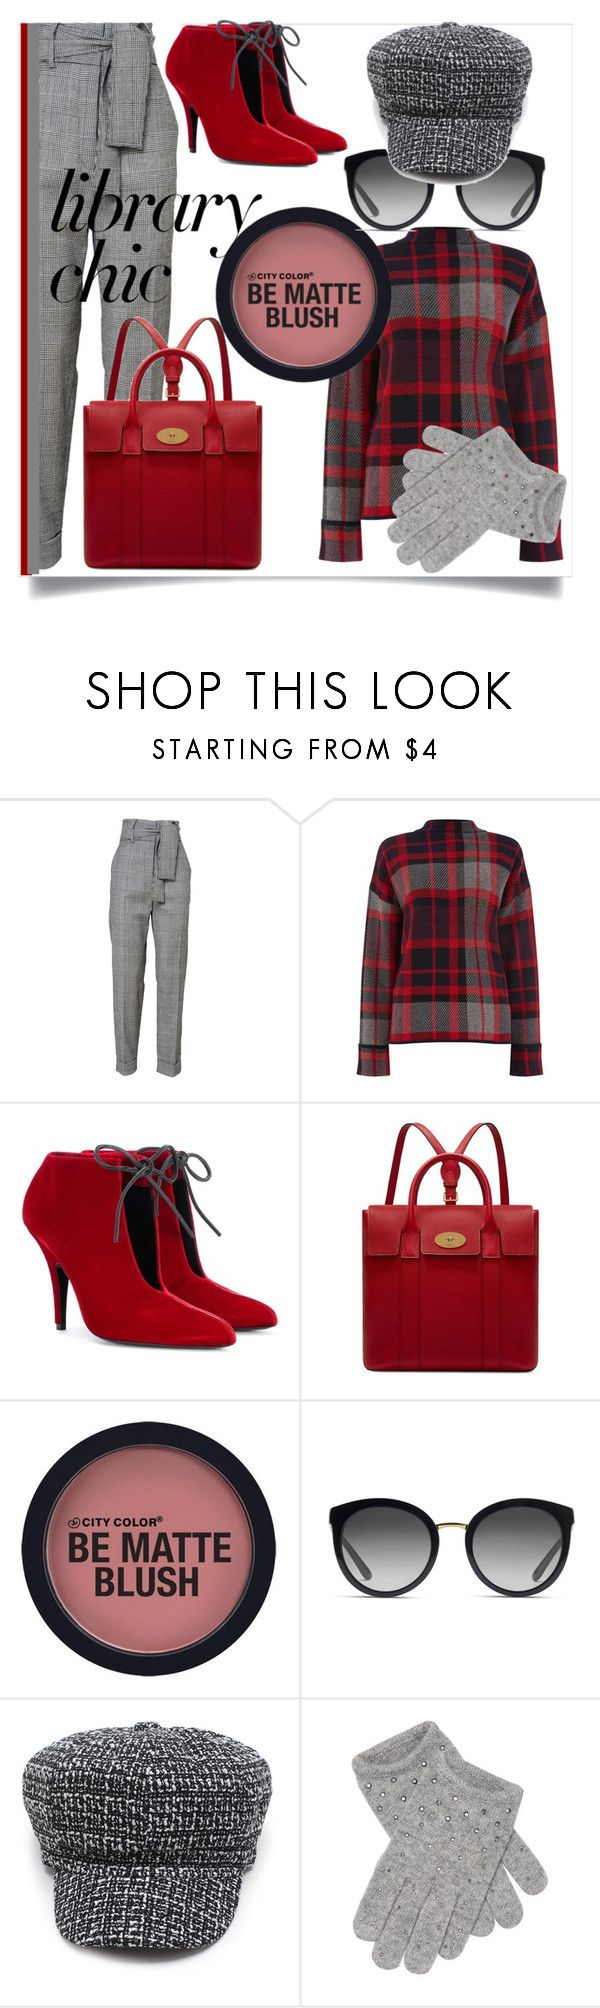 """""""Work Hard, Play Hard: Finals Season"""" by kari-c ❤ liked on Polyvore featuring Warehouse, Tom Ford, Mulberry, Dolce&Gabbana, Portolano and finals"""